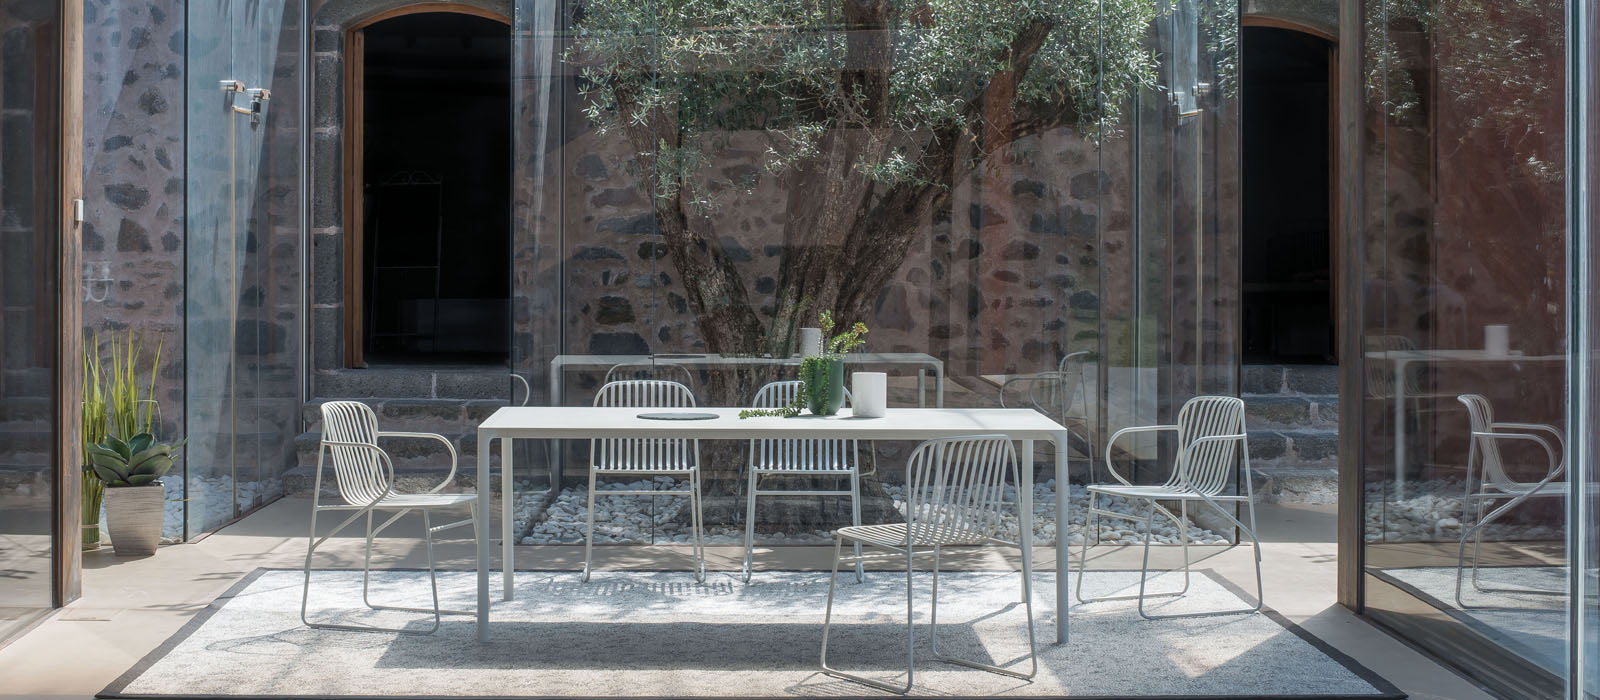 The Riviara collection is a beautifully designed outdoor furniture collection, designed by Lucidi / Pevere.